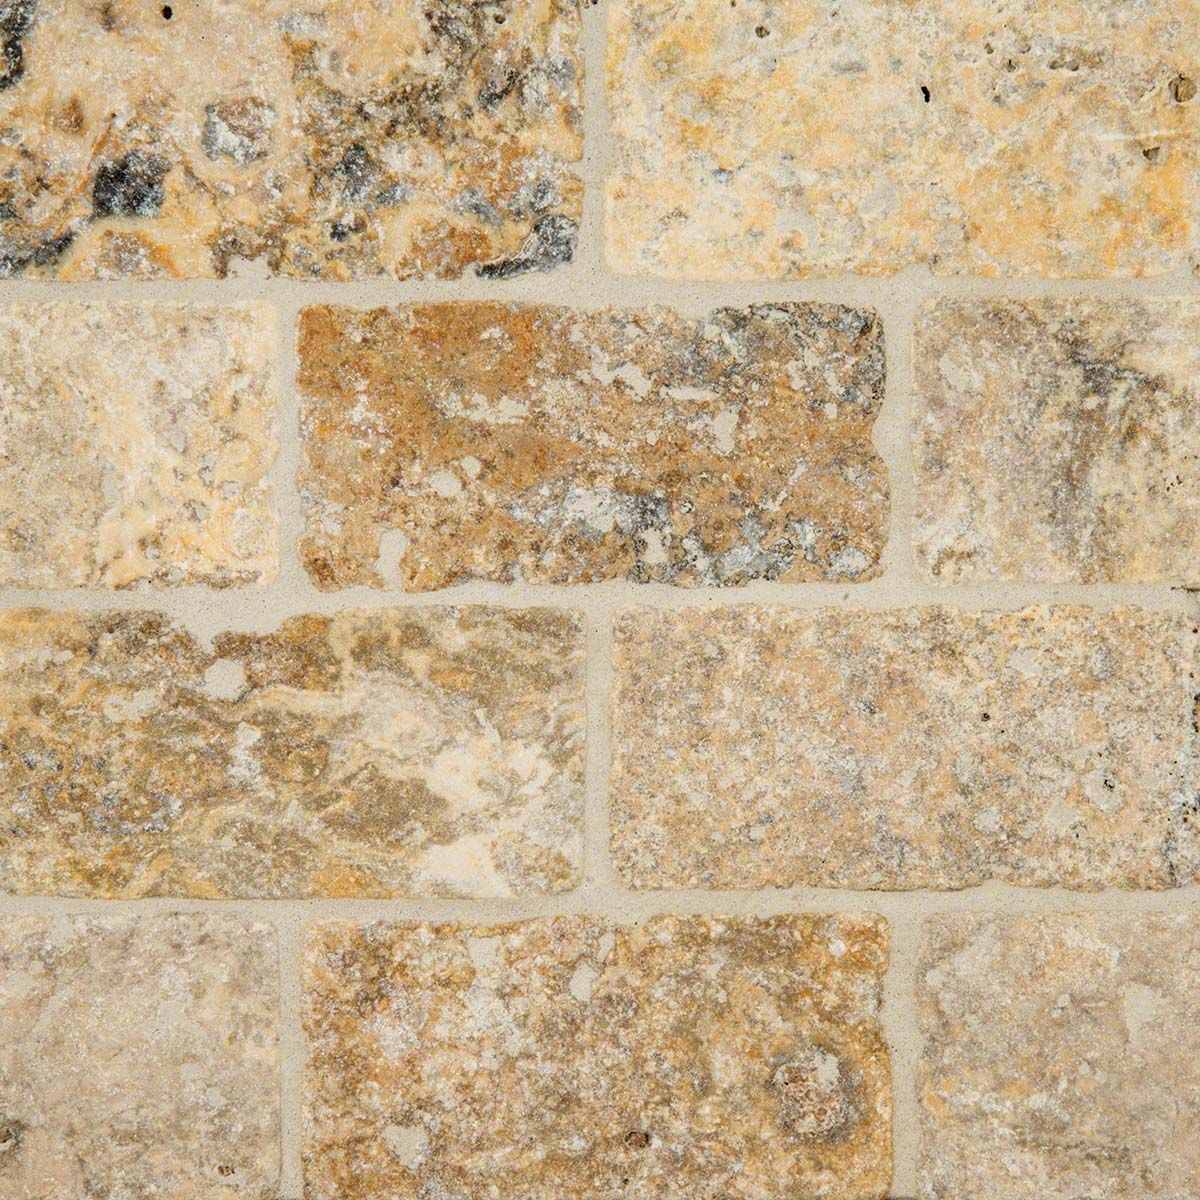 Tuscany scabas 3x6 tumbled travertine backsplash kitchen the texture and character of this natural travertine backsplash tile shine through with the subtly honed dailygadgetfo Image collections